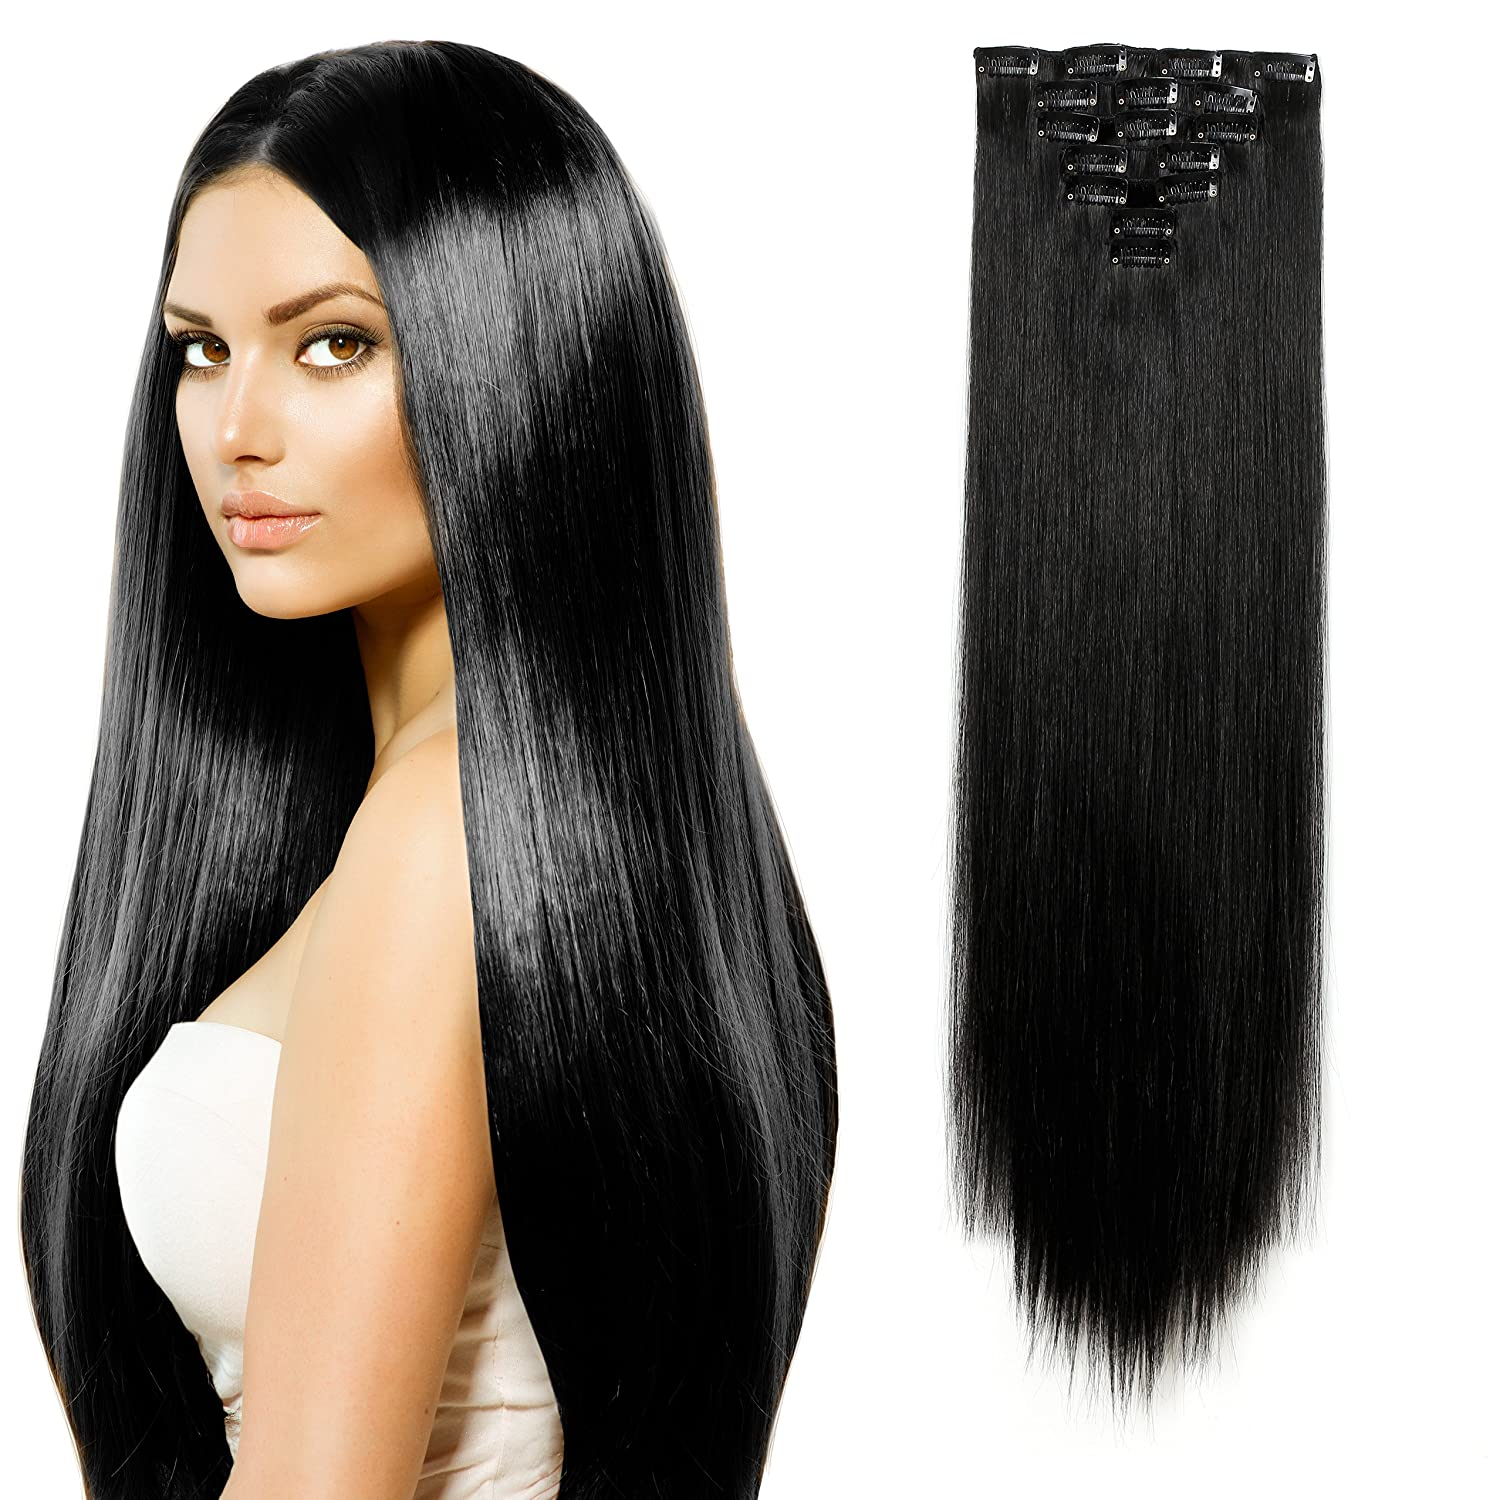 Amazon onedor 24 straight full head kanekalon futura heat amazon onedor 24 straight full head kanekalon futura heat resistance hair extensions clip onin hairpieces 7pcs 140g straight 1b off black pmusecretfo Image collections